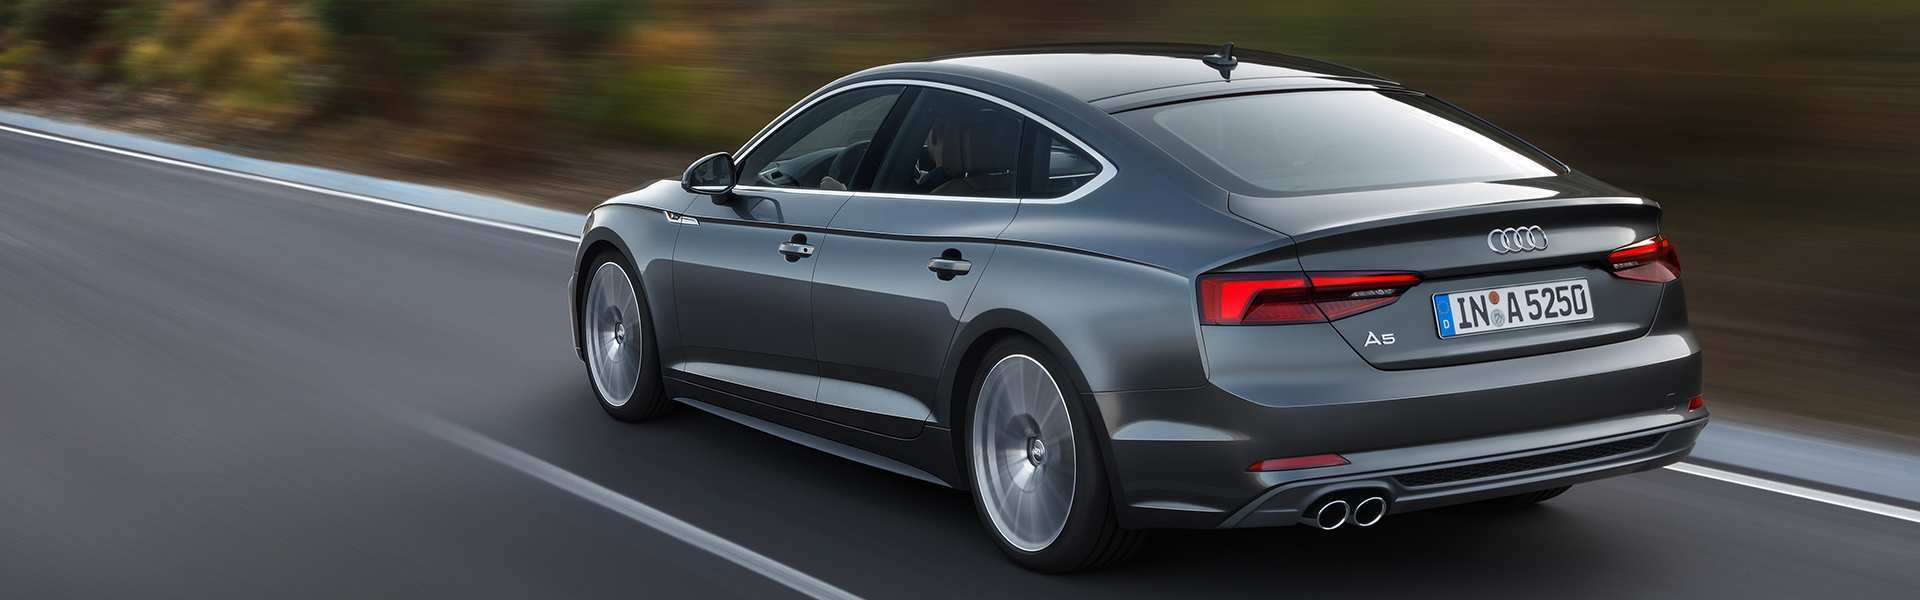 29 The Best 2019 Audi A5 Review